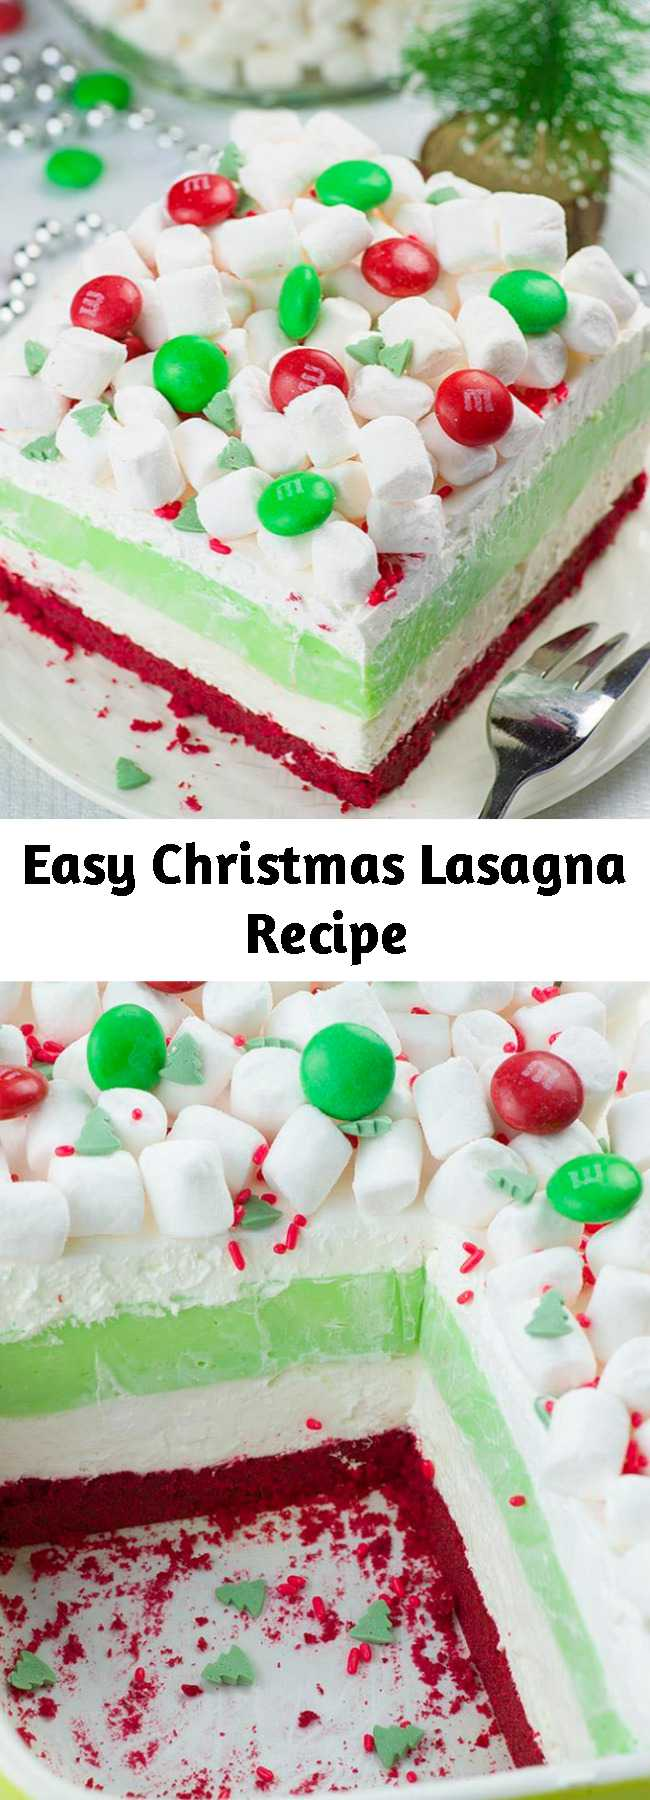 Easy Christmas Lasagna Recipe - Christmas Lasagna is a whimsical layered dessert recipe! Made with buttery, red velvet shortbread cookie crust, a peppermint cheesecake layer, white chocolate pudding, whipped cream and mini marshmallows on top. I'm sure it will be a hit at your Christmas gathering. #christmasdesserts #christmasrecipes #marshmallows